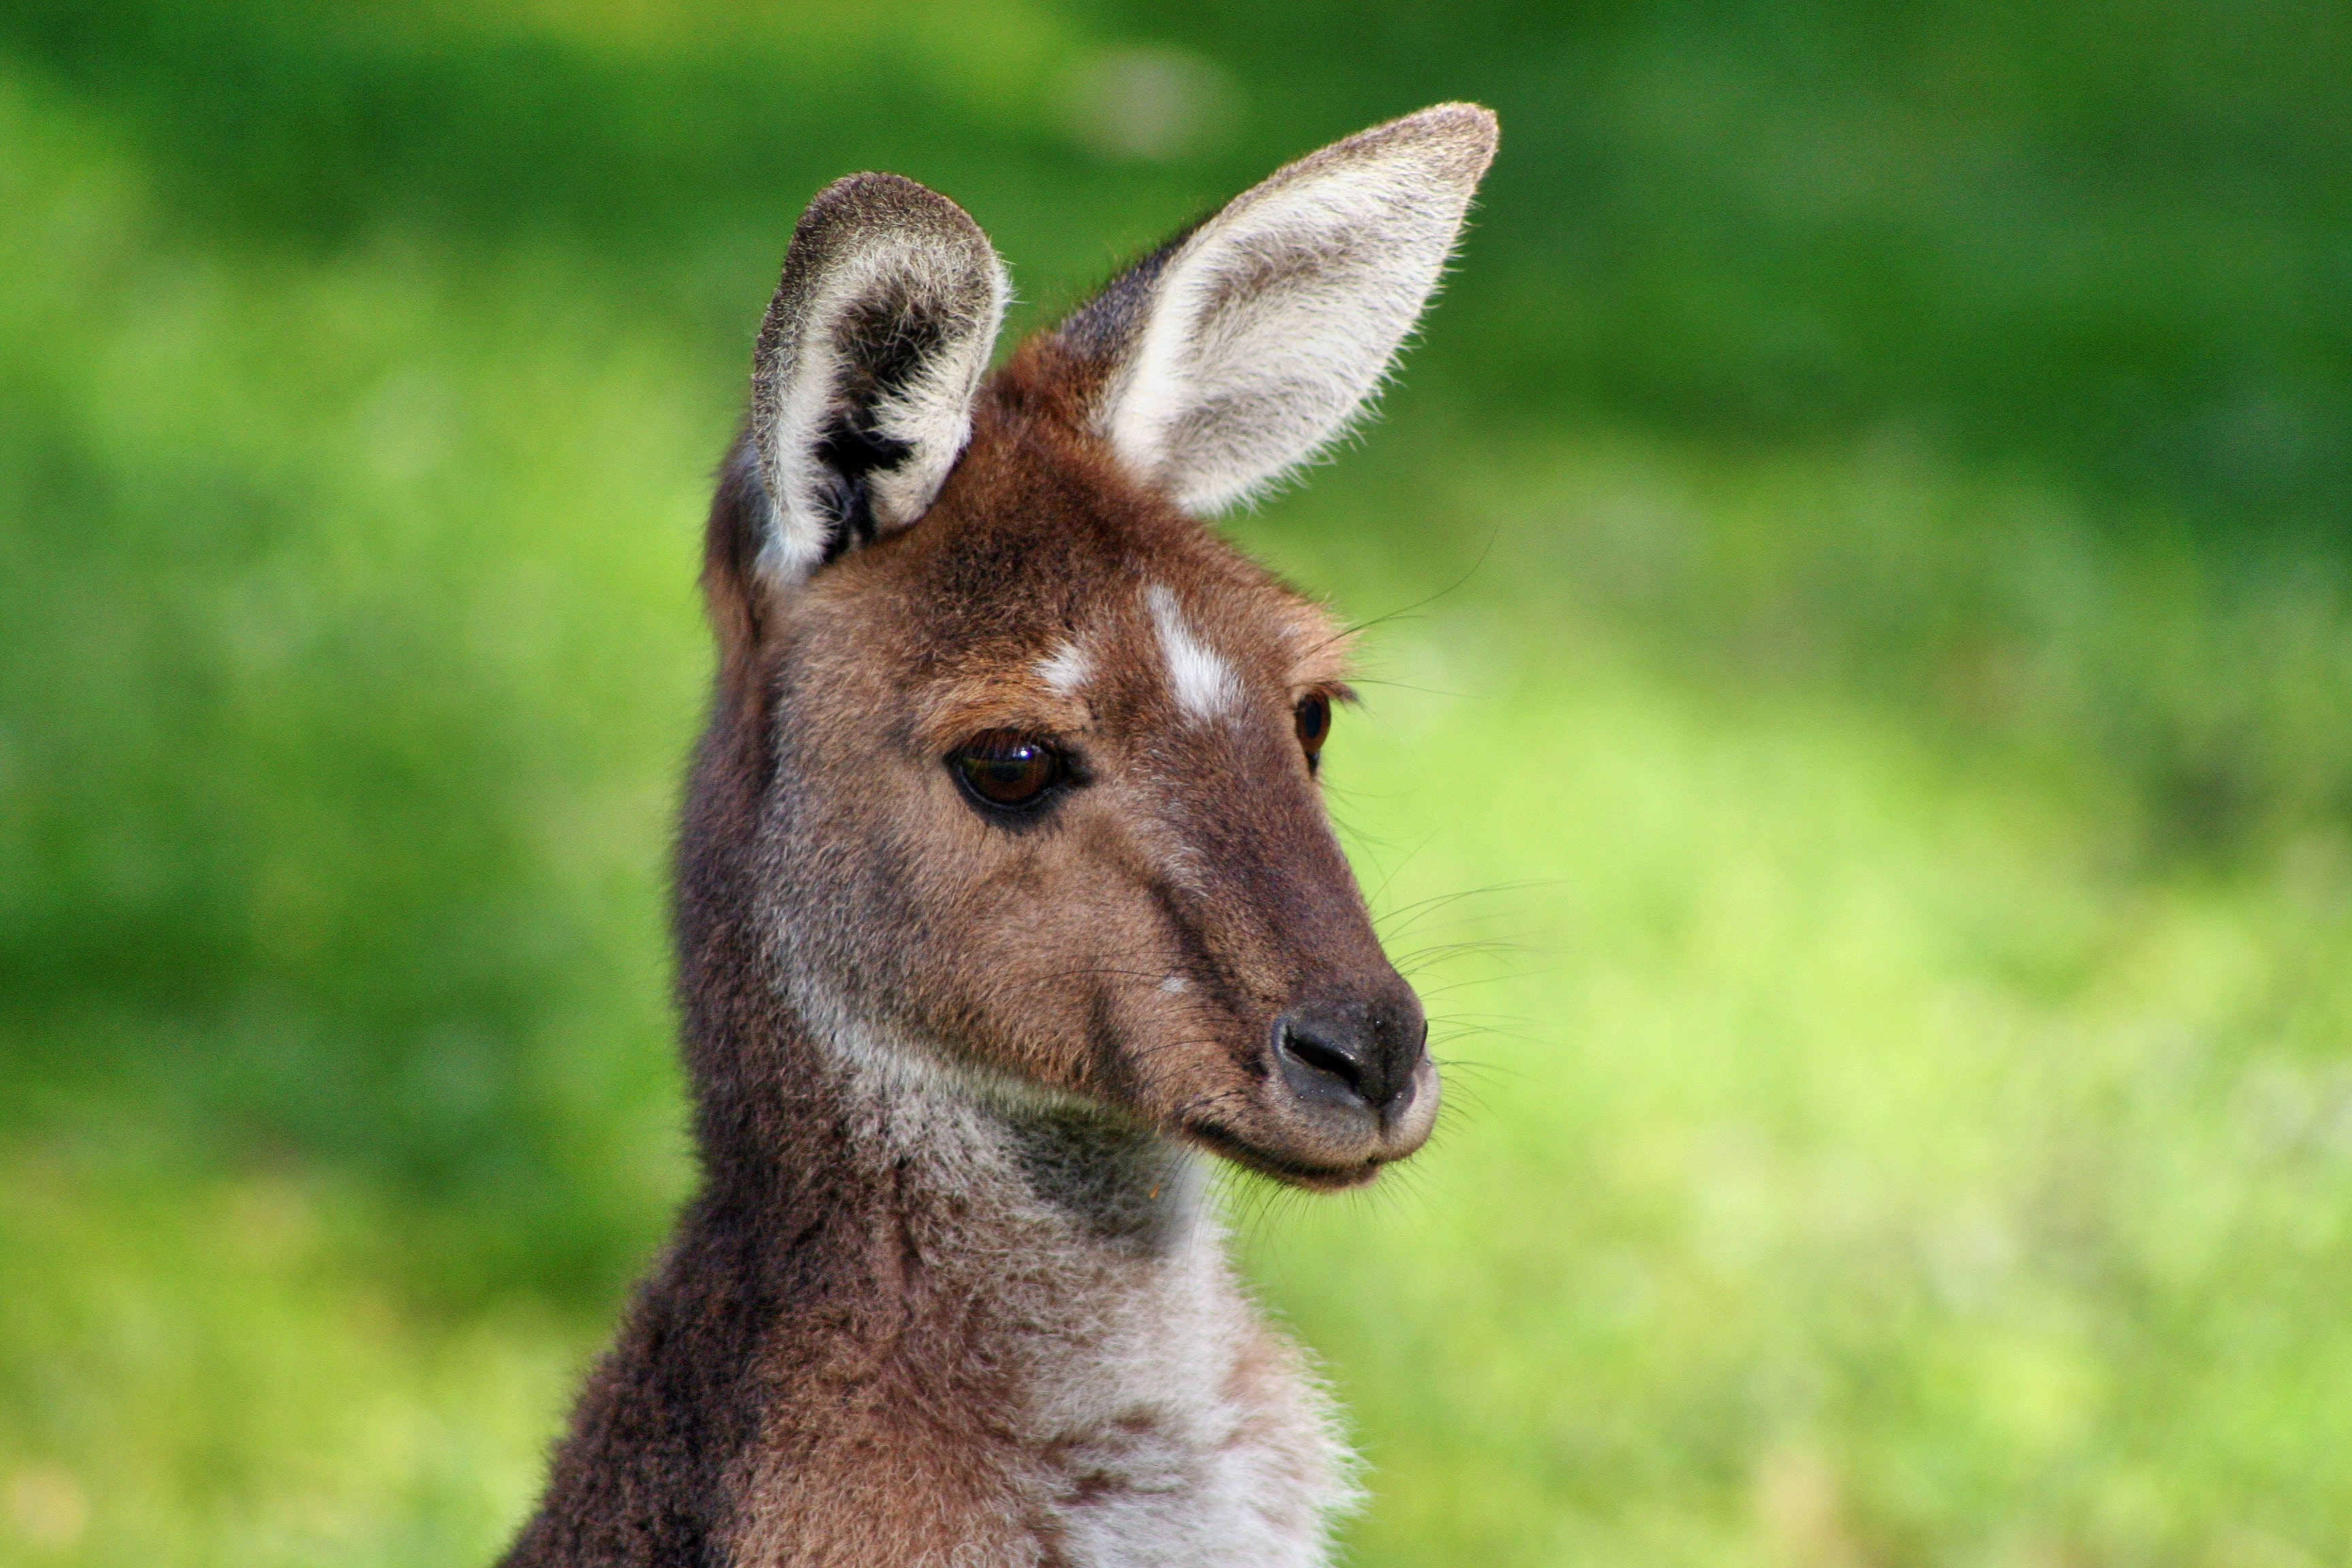 Close-up of a kangaroo's head